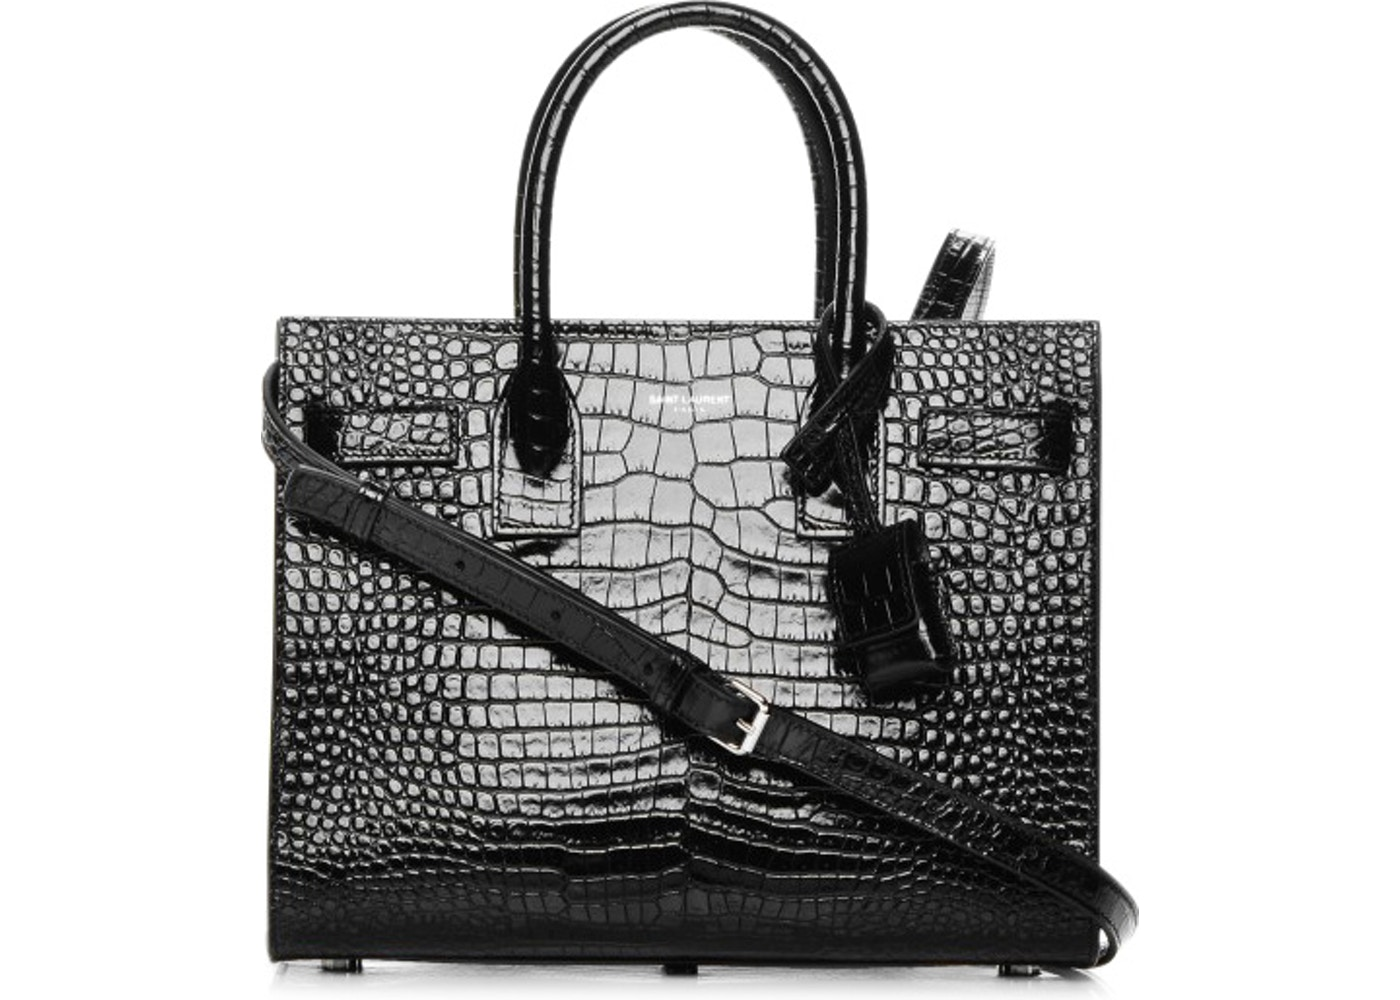 0c3fb4228c189 Buy   Sell Saint Laurent Sac de Jour Handbags